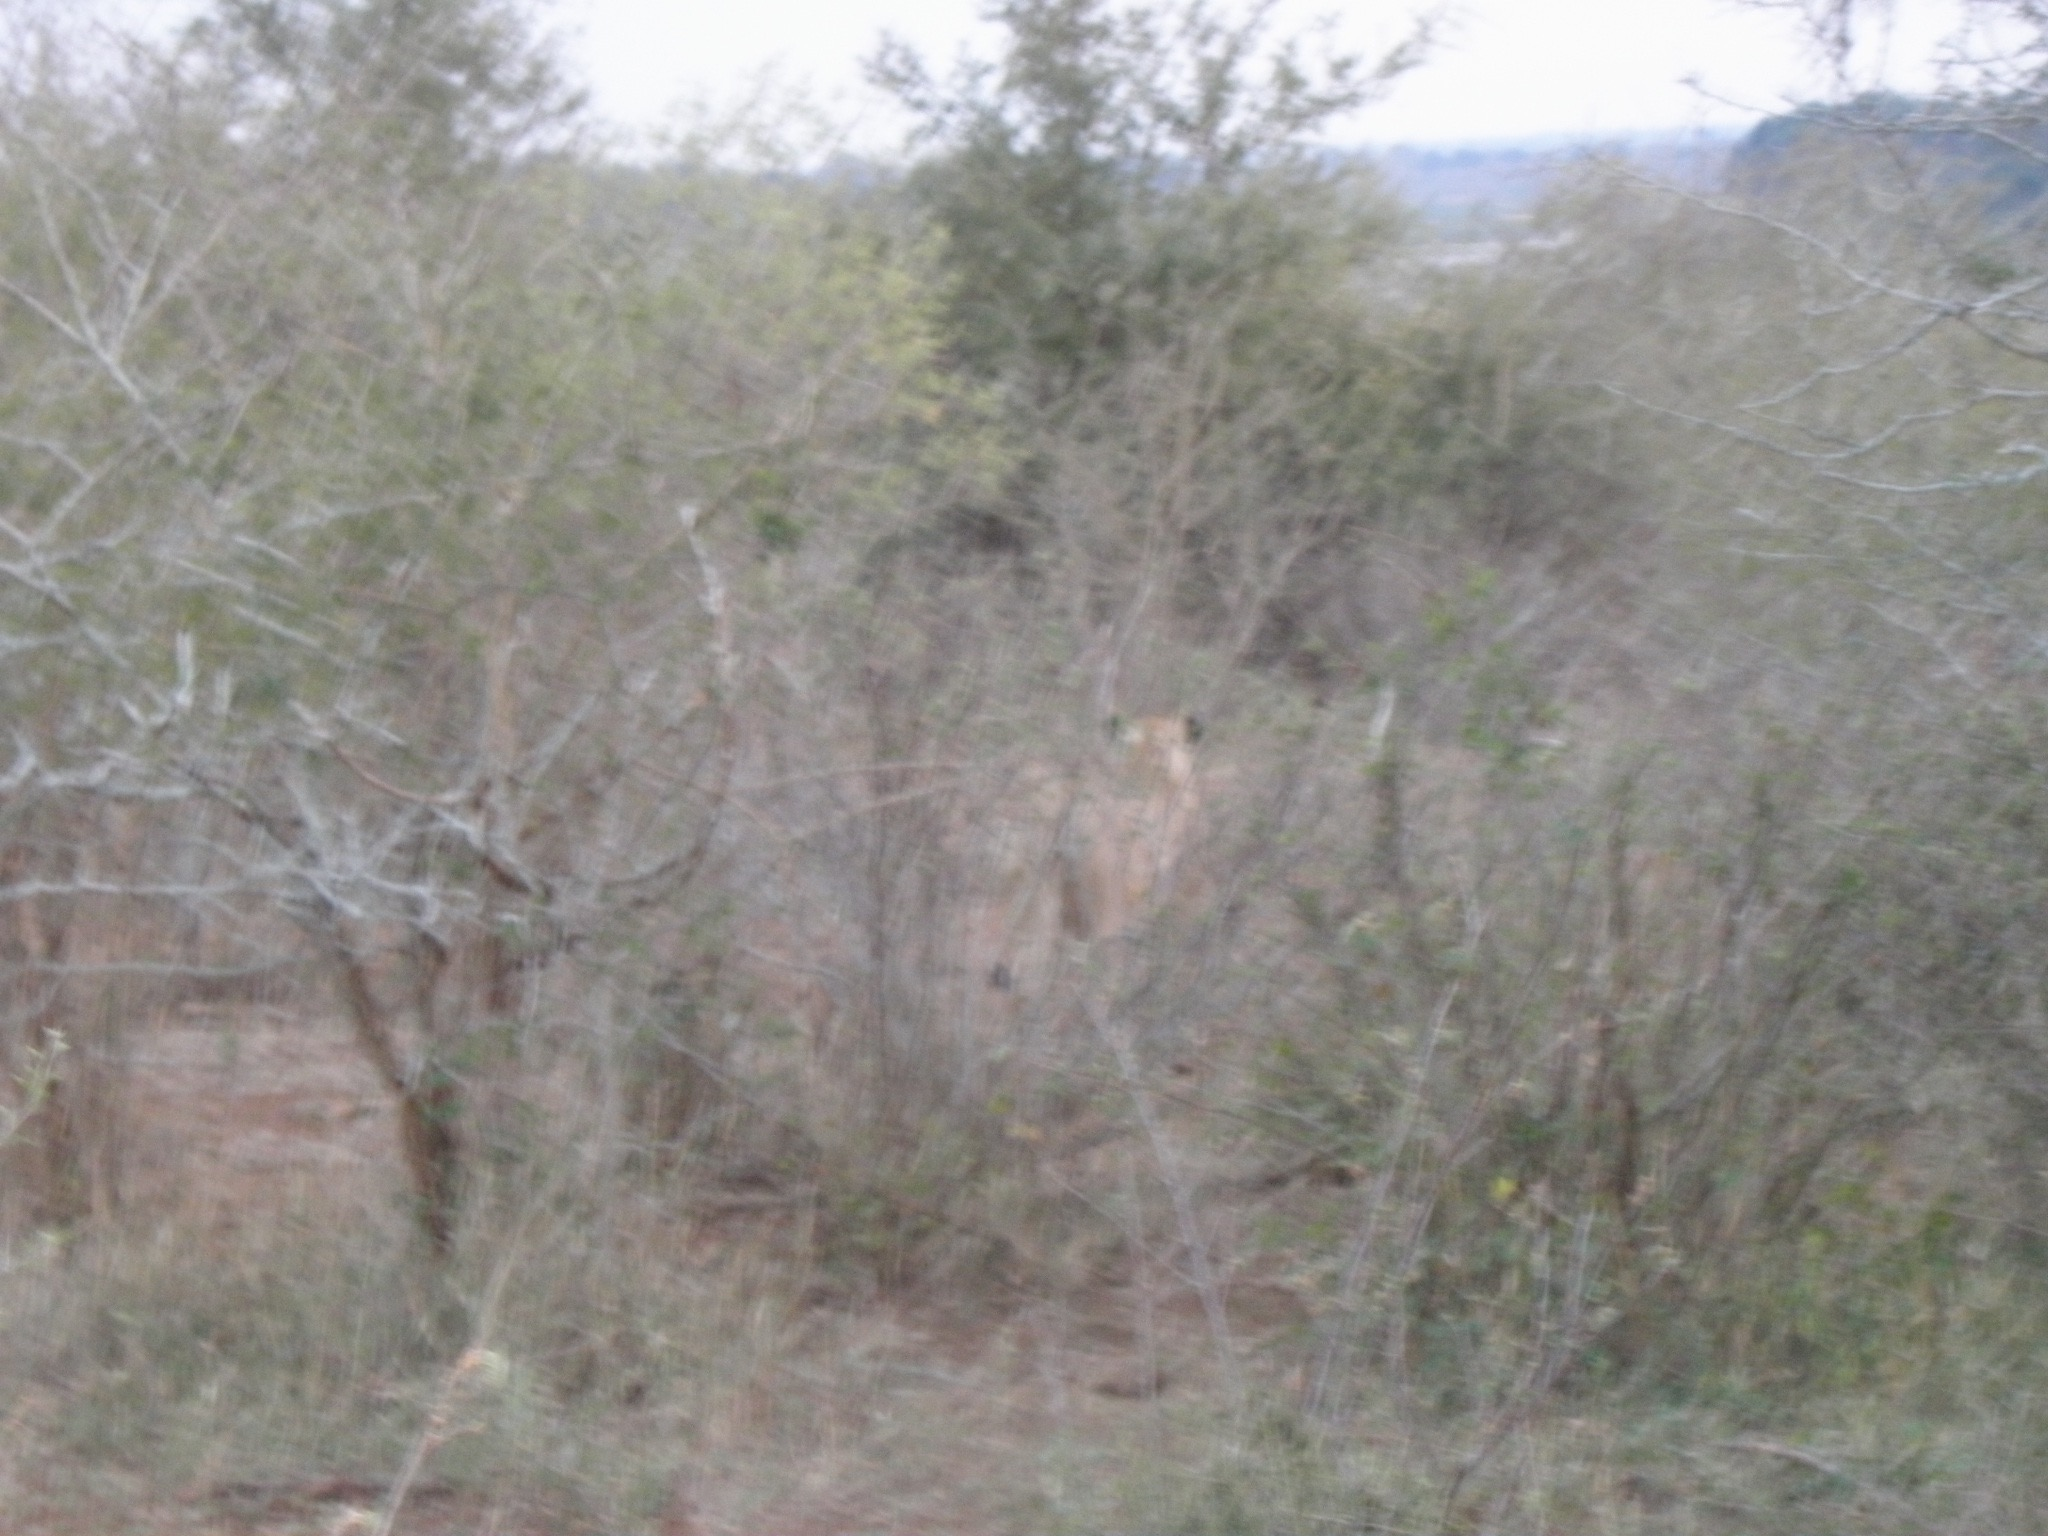 I was thrilled to see two lionesses just after dawn